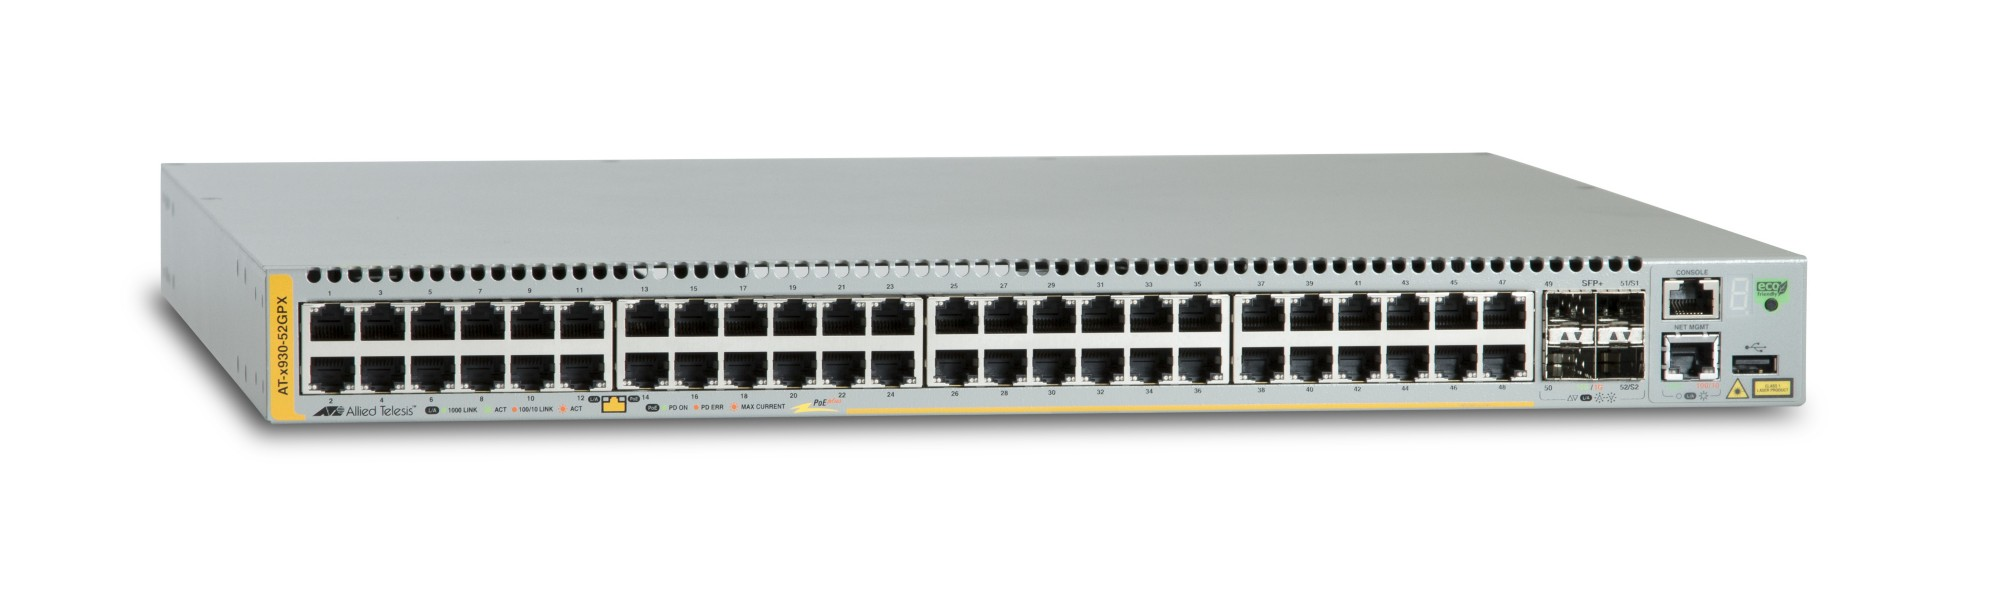 ALLIED TELESIS AT-X930-52GPX MANAGED NETWORK SWITCH L3 GIGABIT ETHERNET (10/100/1000) POWER OVER (POE) GREY